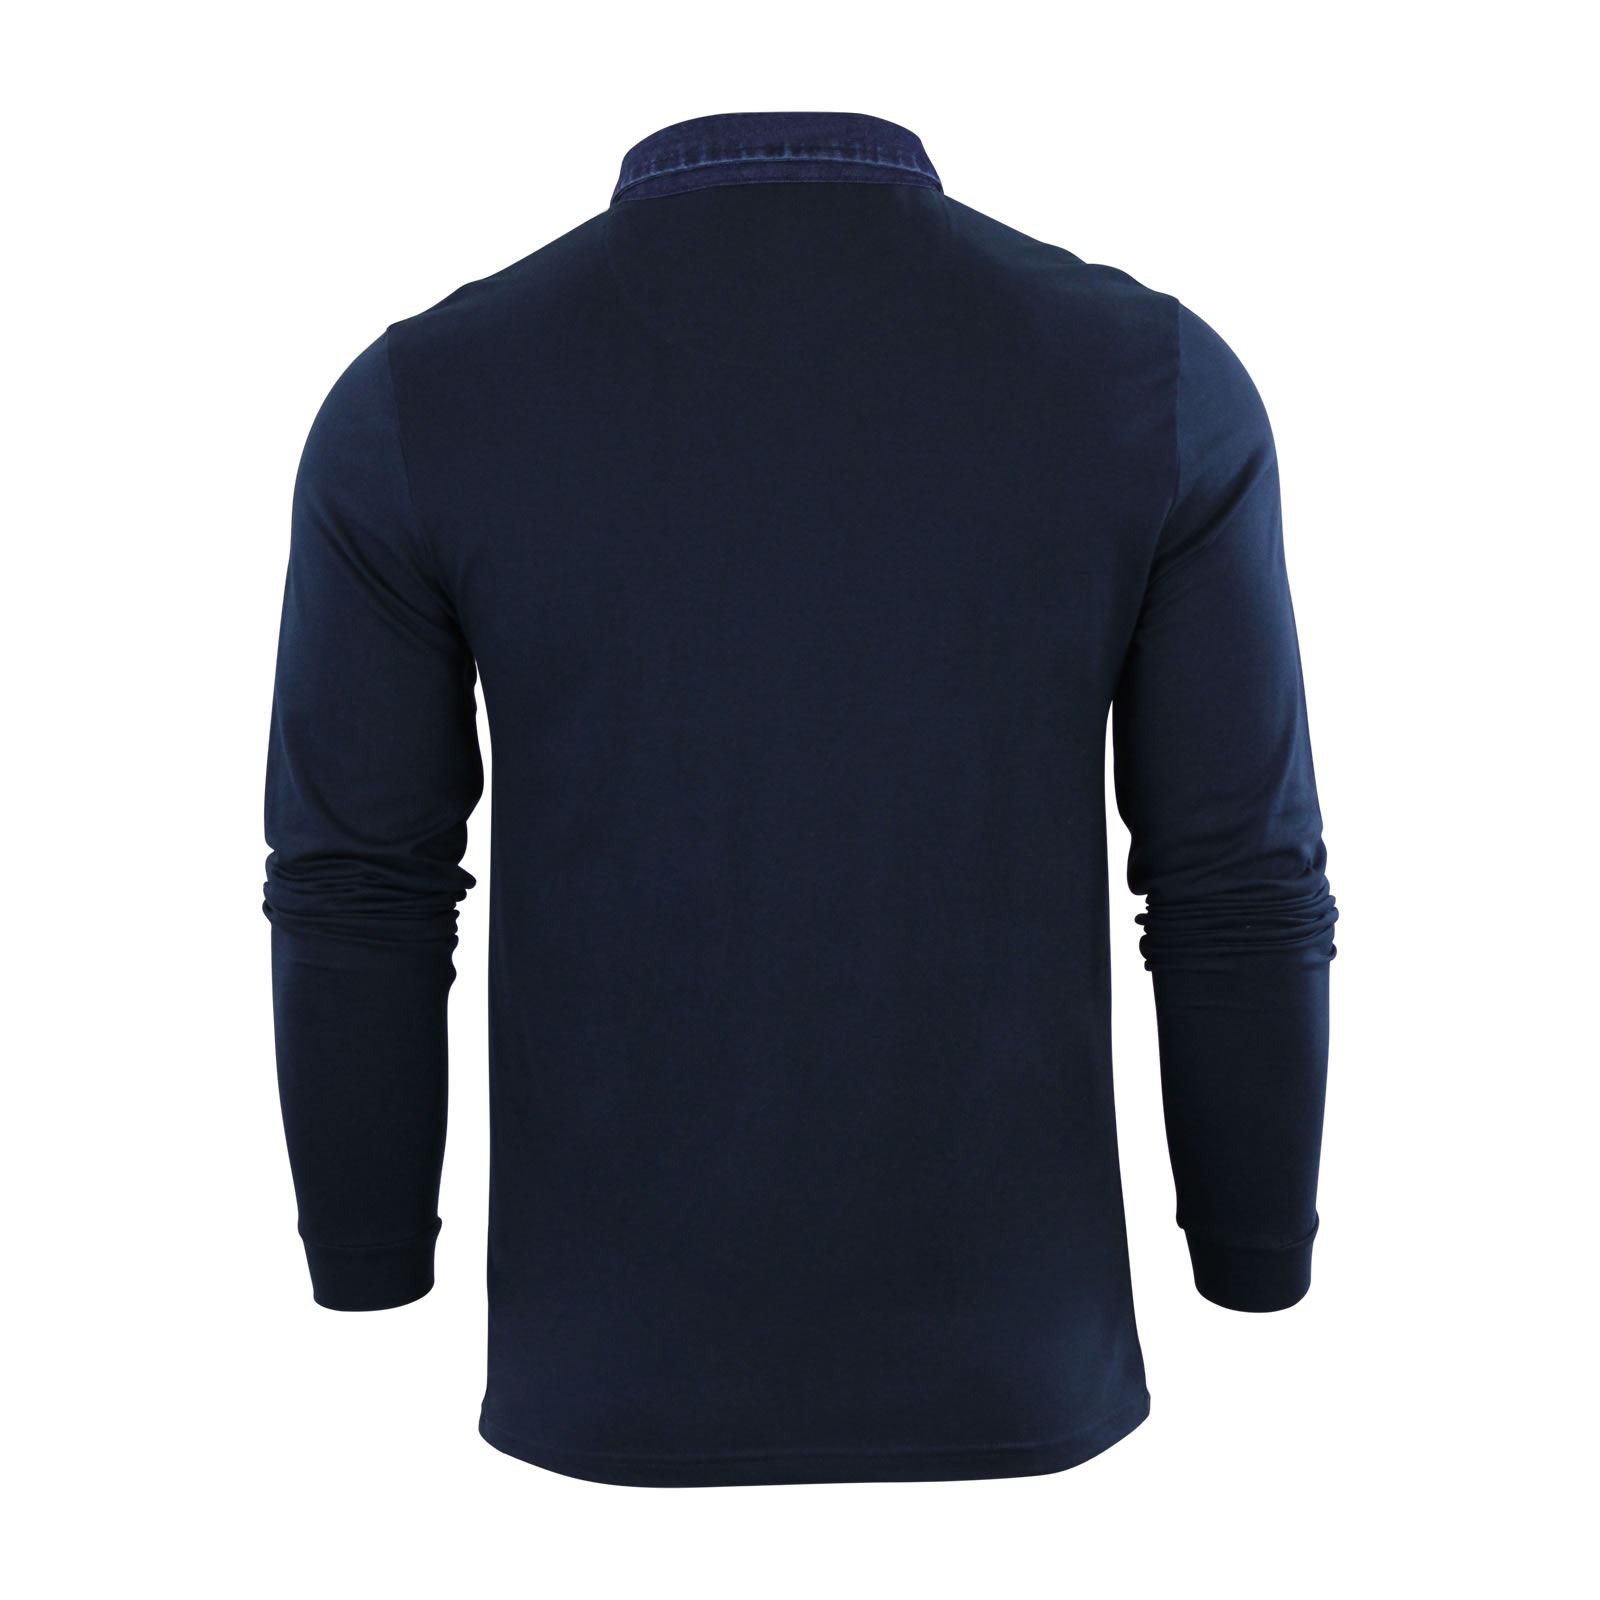 Mens-Polo-Shirt-Brave-Soul-Long-Sleeve-Collared-Top-In-Various-Styles thumbnail 12